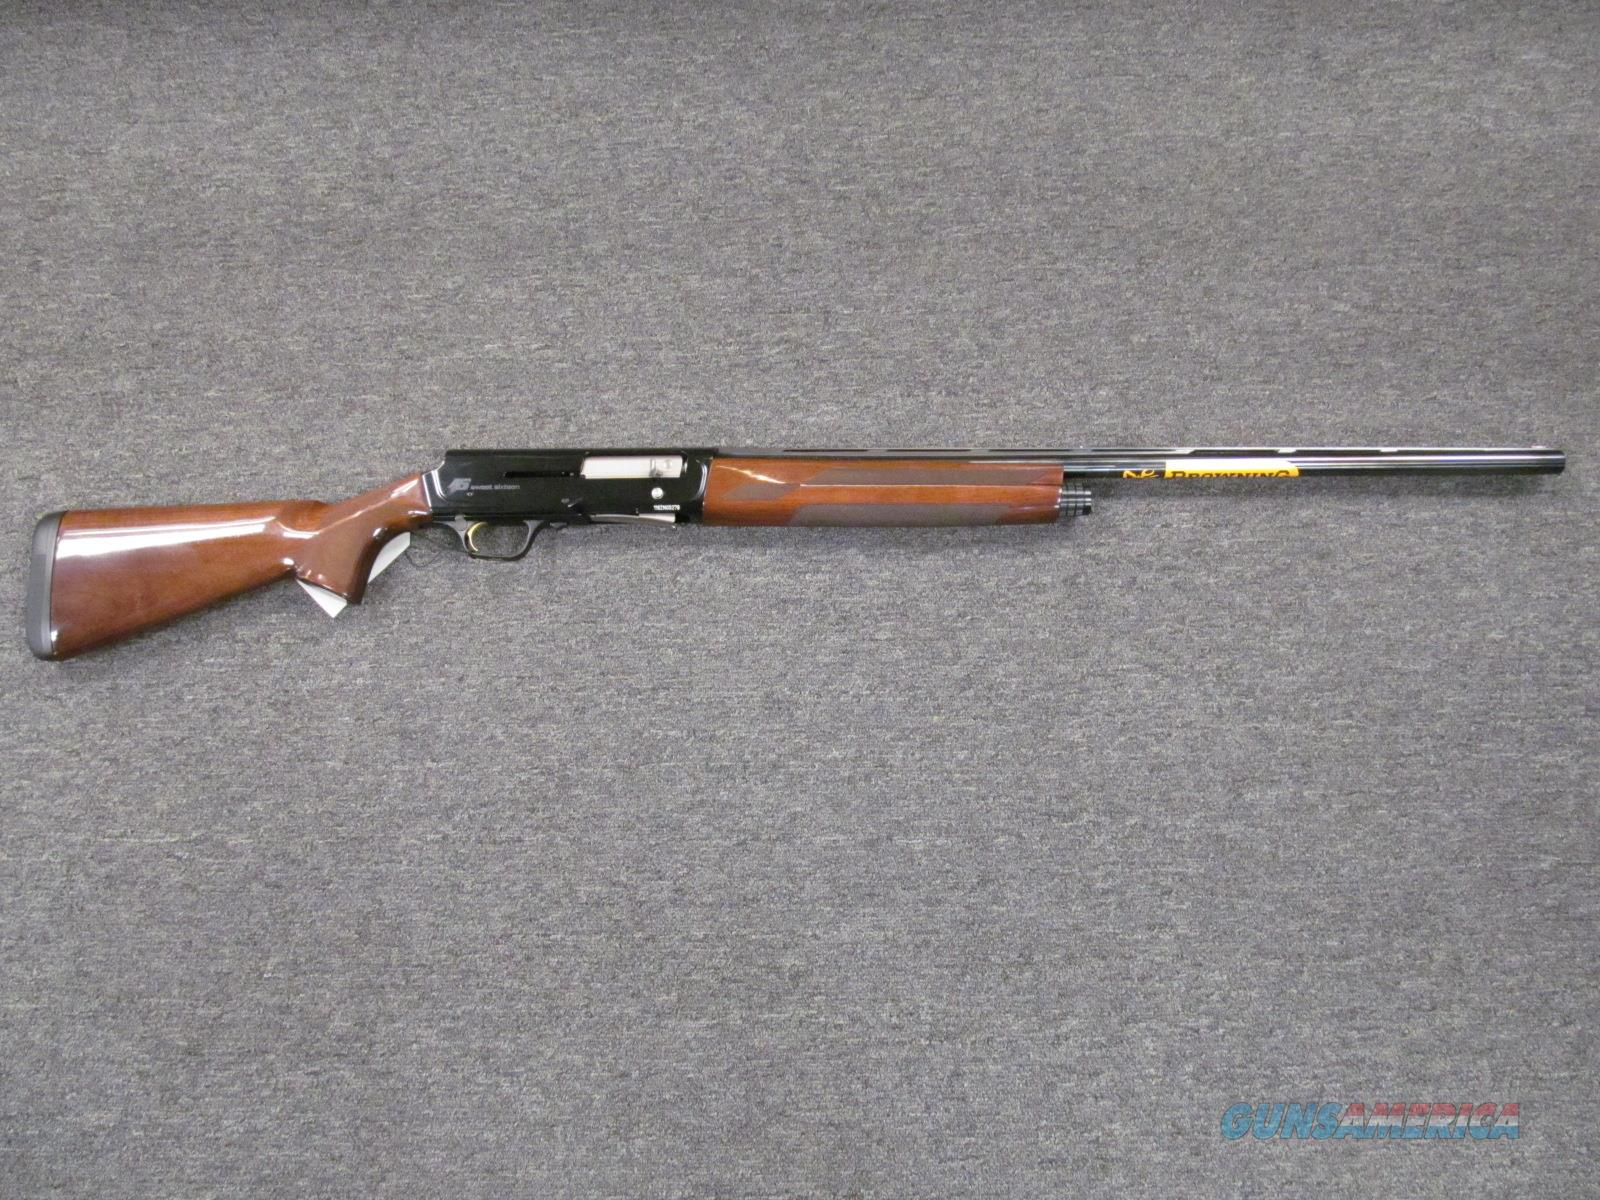 browning sweet 16 for sale on GunsAmerica. Buy a browning